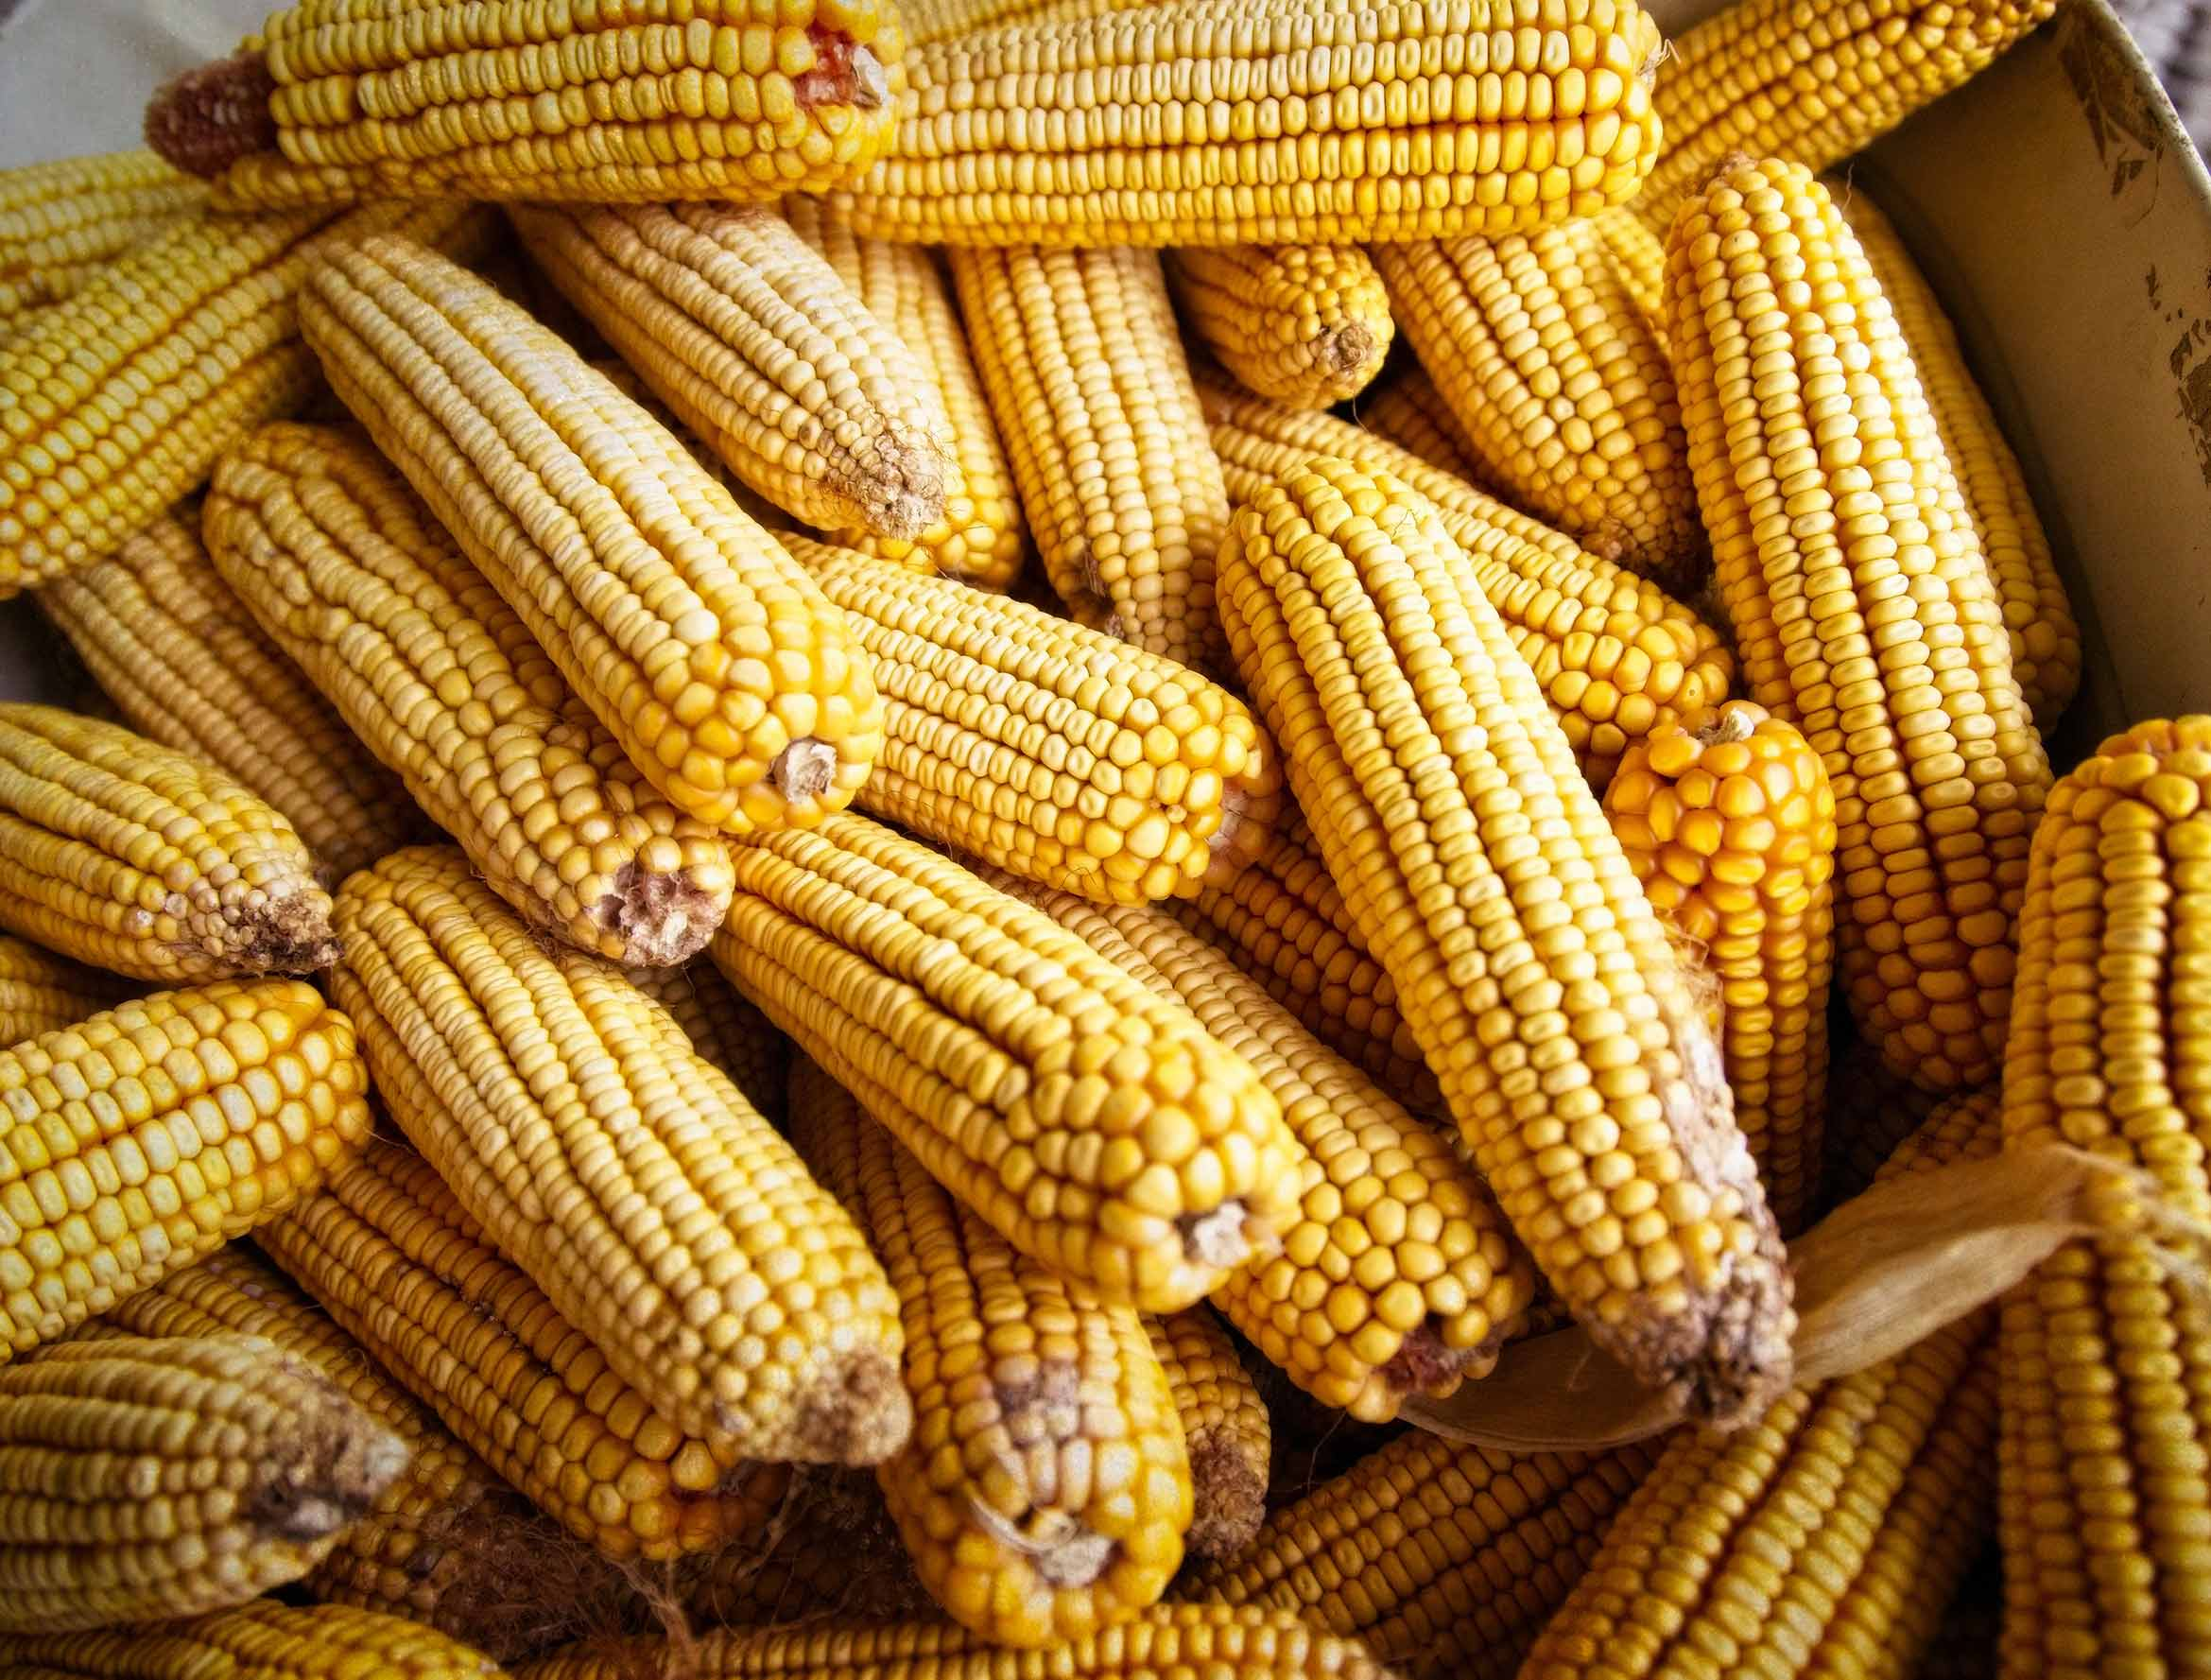 Basket of Corn on the Cob